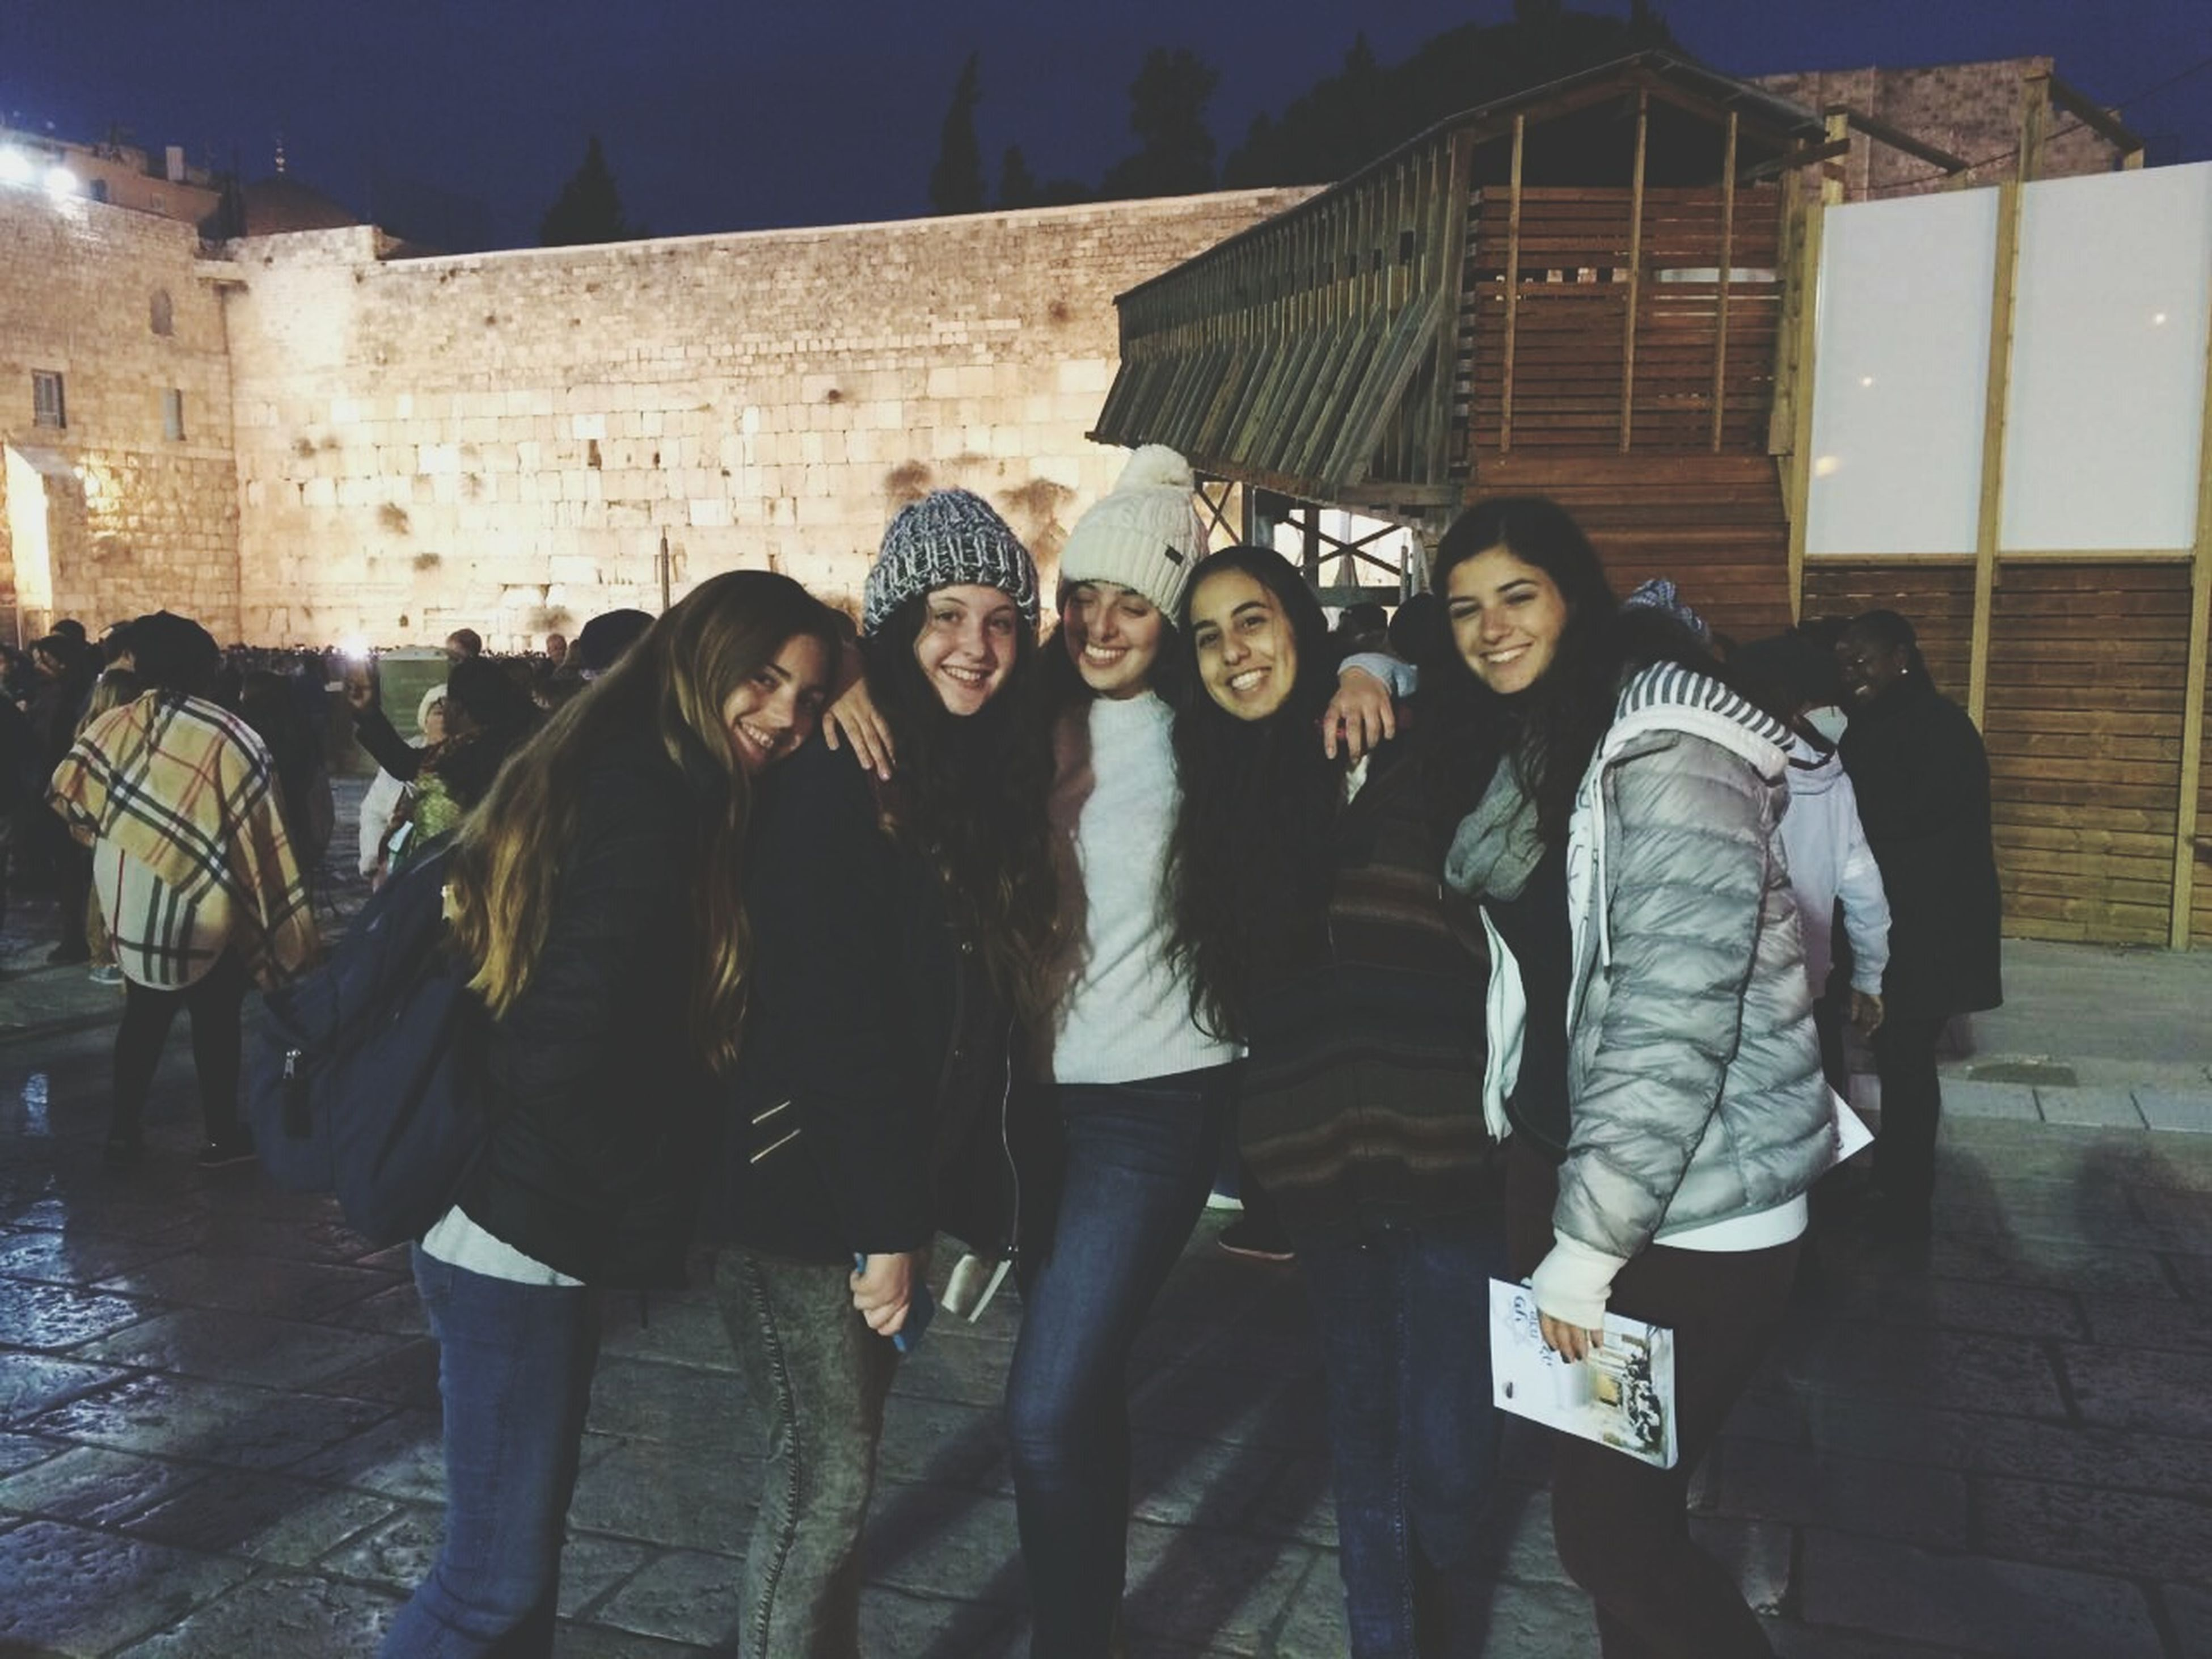 building exterior, architecture, leisure activity, friendship, young women, casual clothing, built structure, young adult, lifestyles, city, togetherness, women, outdoors, happiness, smiling, real people, cheerful, day, people, adult, adults only